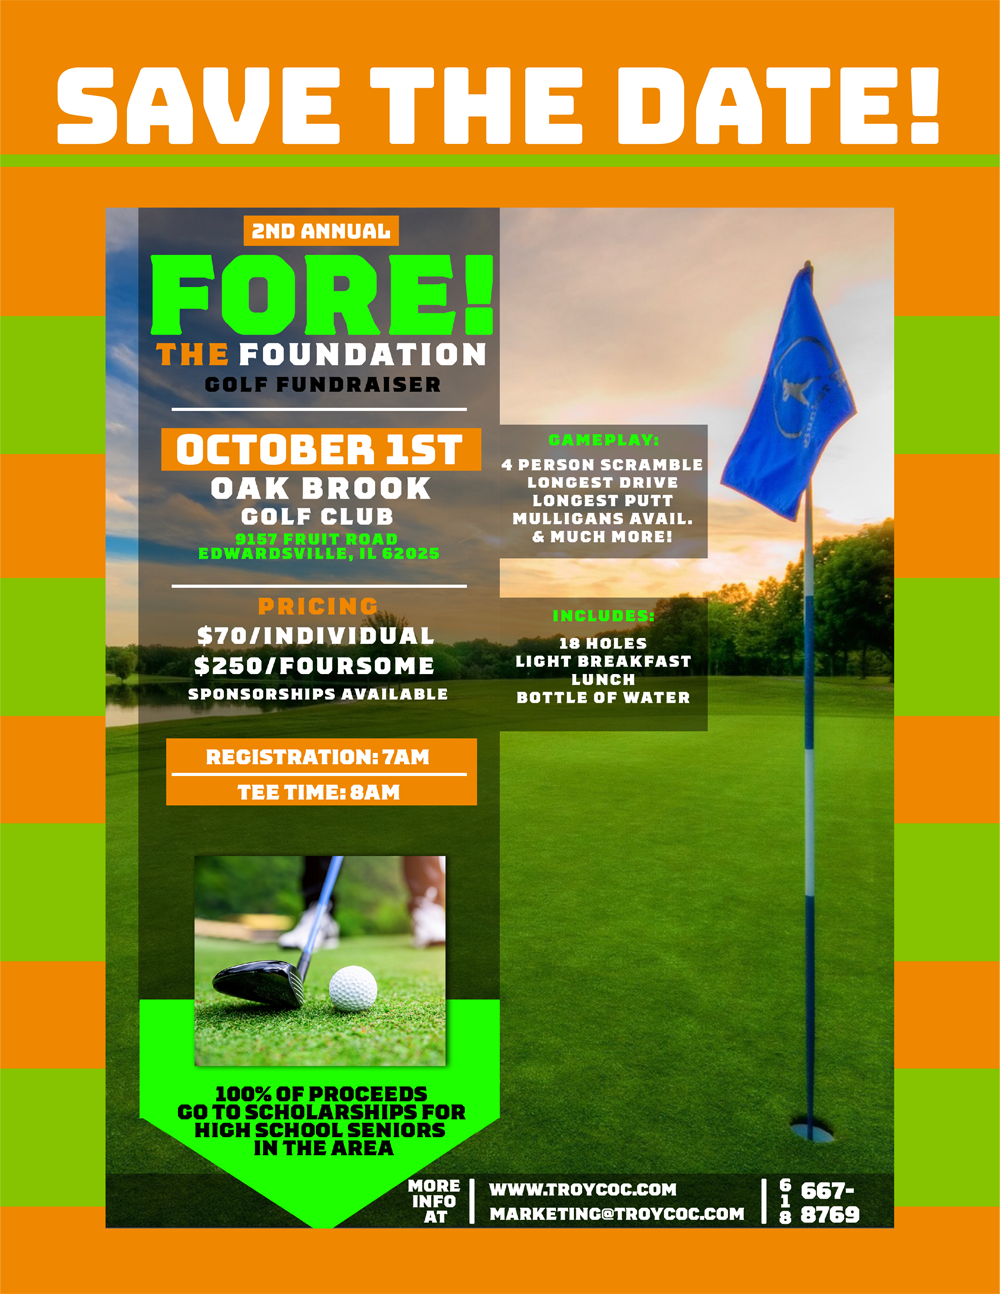 Save the Date Foundation Golf Event